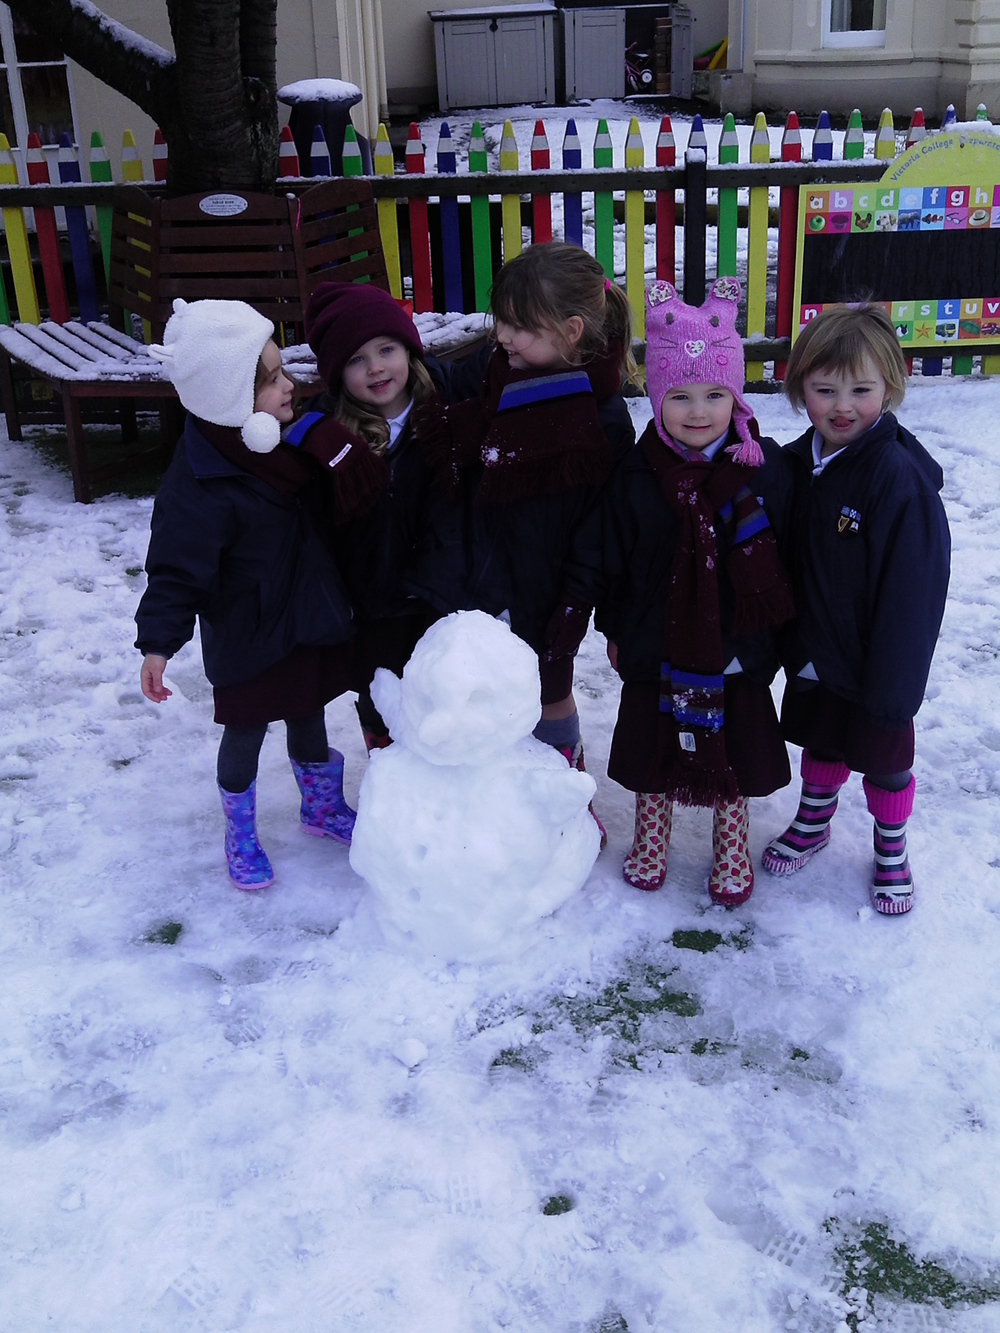 We worked together to build our snowman!